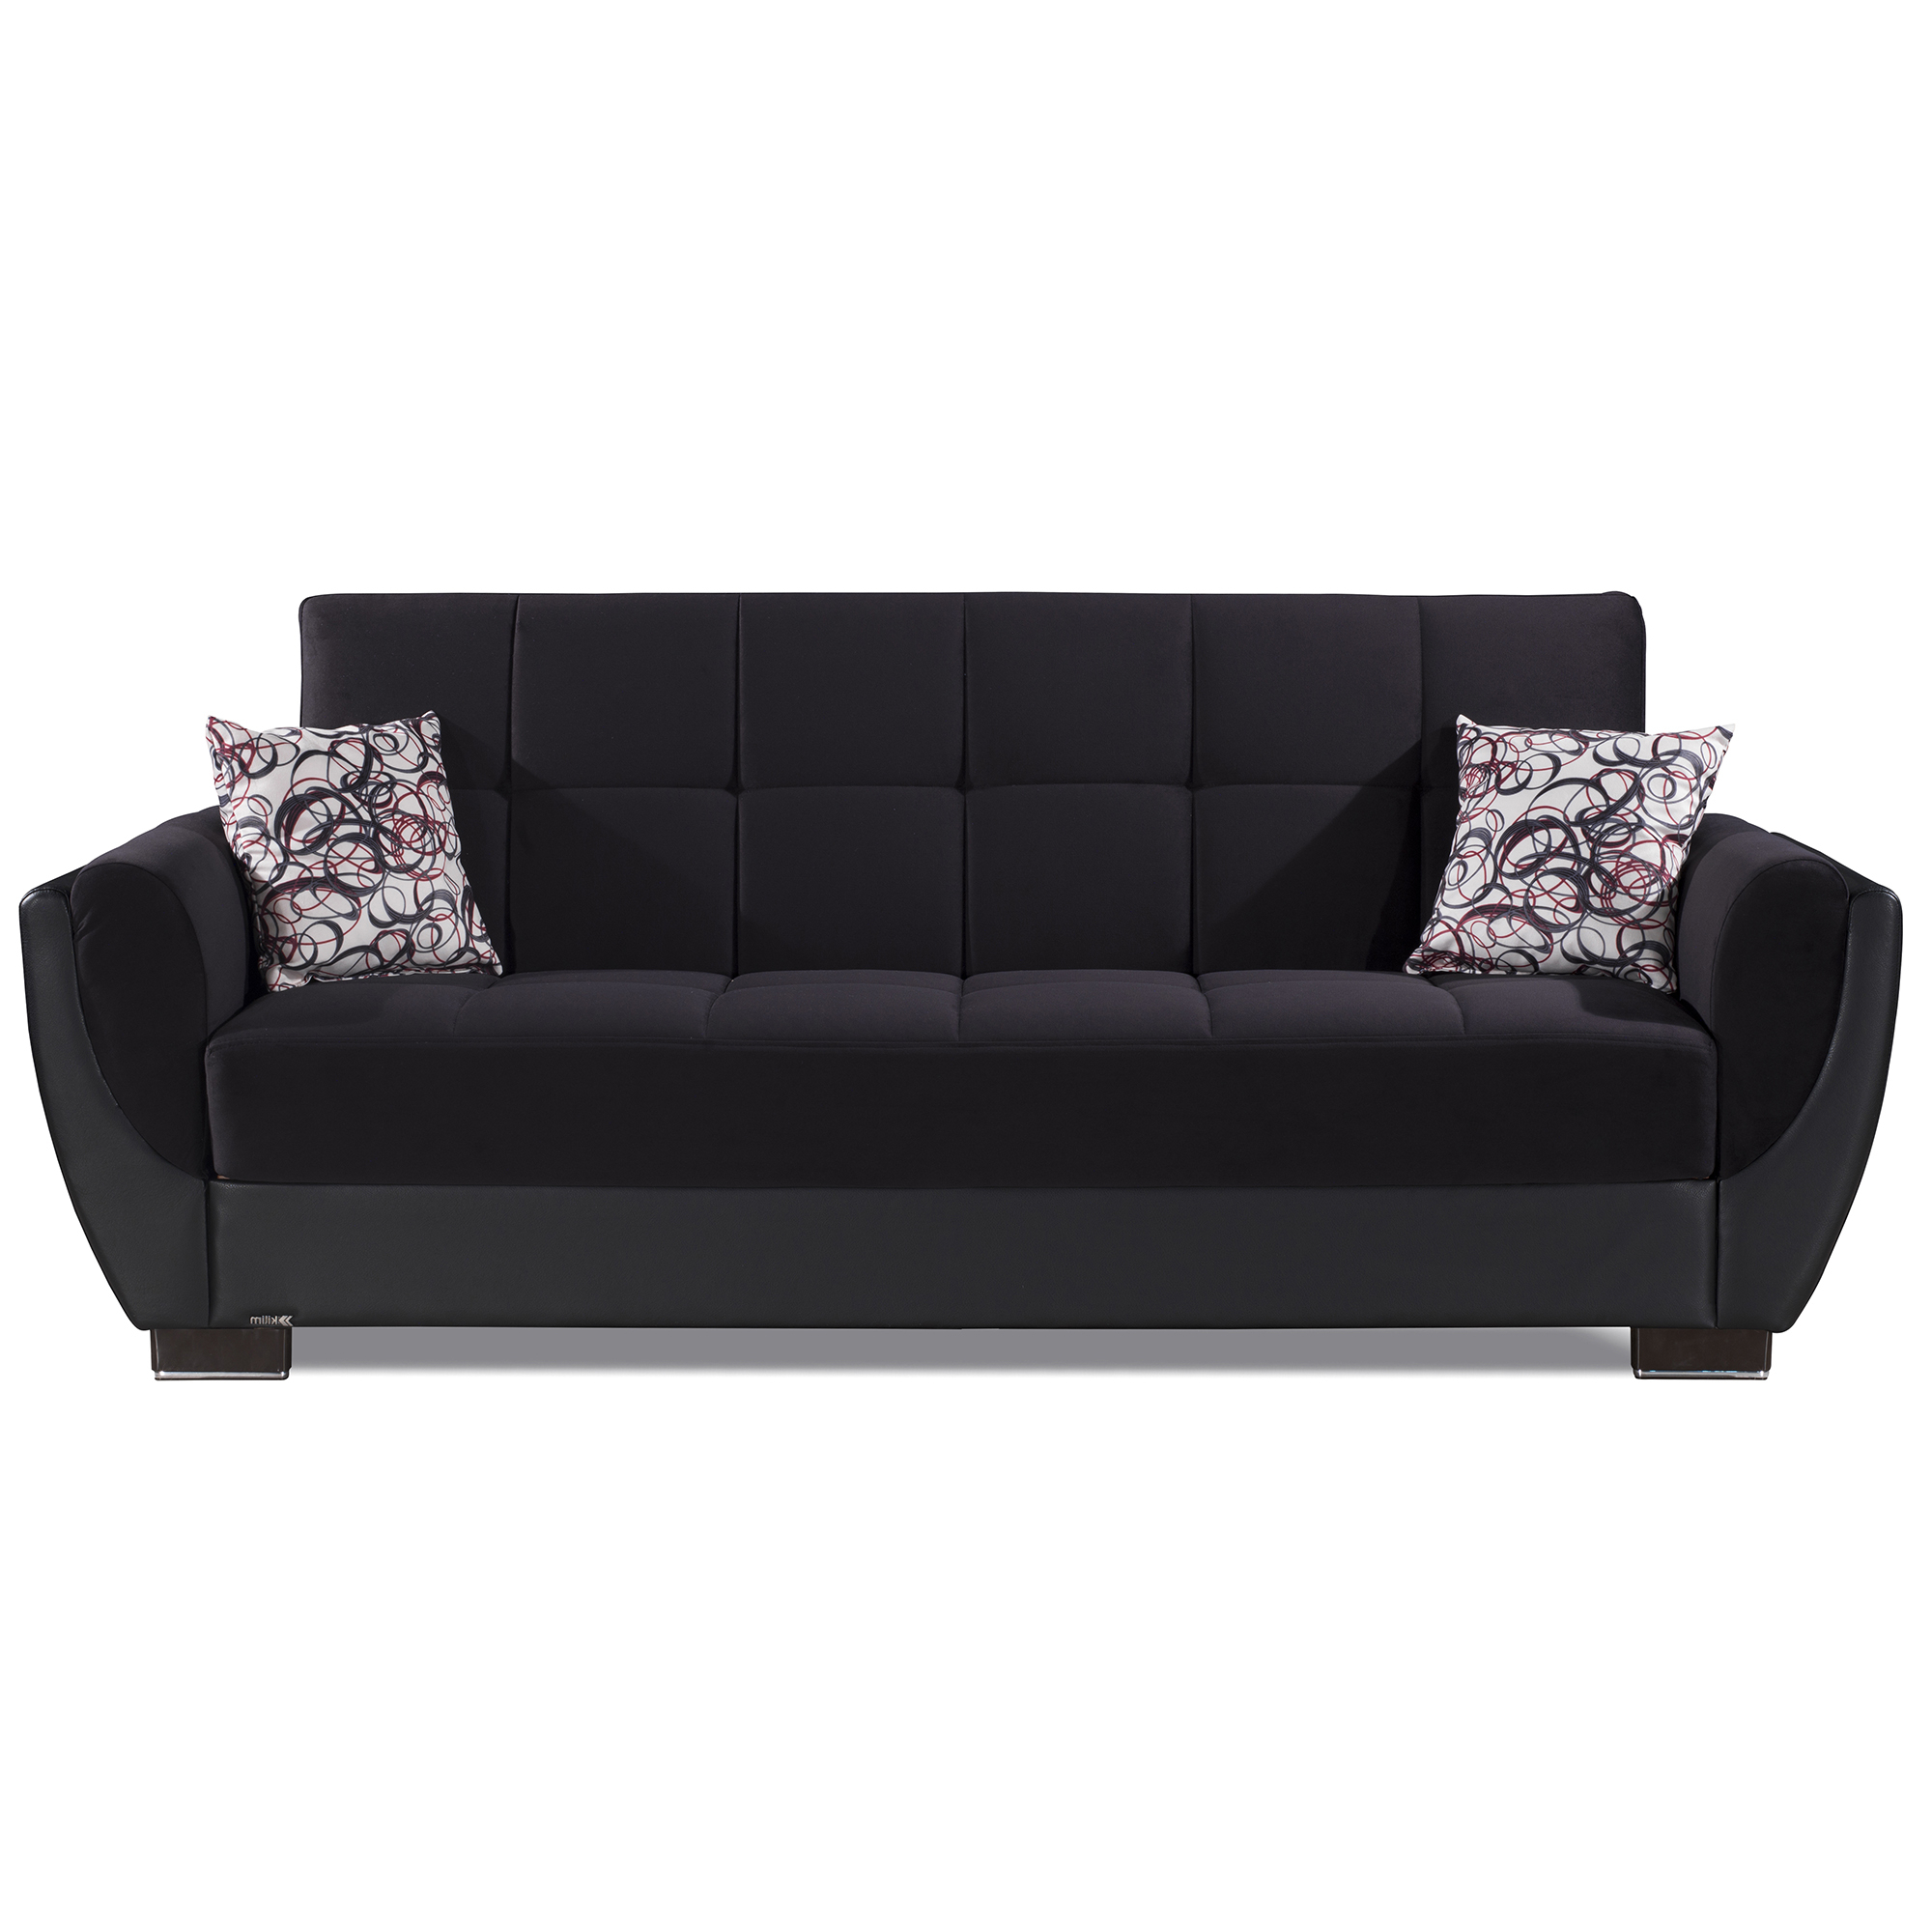 Ottomanson Armada Air Fabric Upholstery Sleeper Sofa Bed In Most Recently Released Prato Storage Sectional Futon Sofas (View 6 of 20)